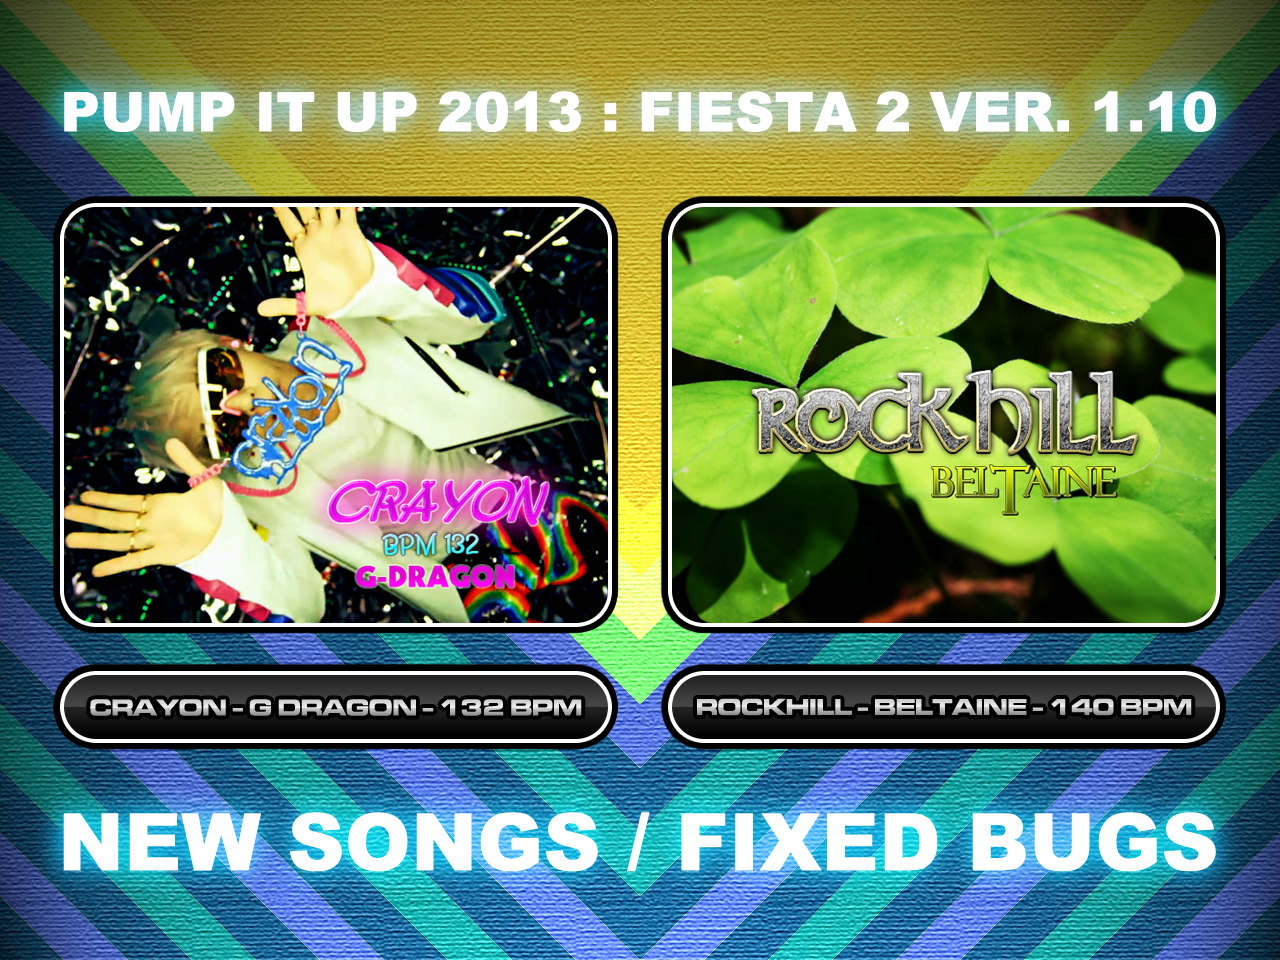 Pump It Up 2013: Fiesta 2 Ver. 1.10